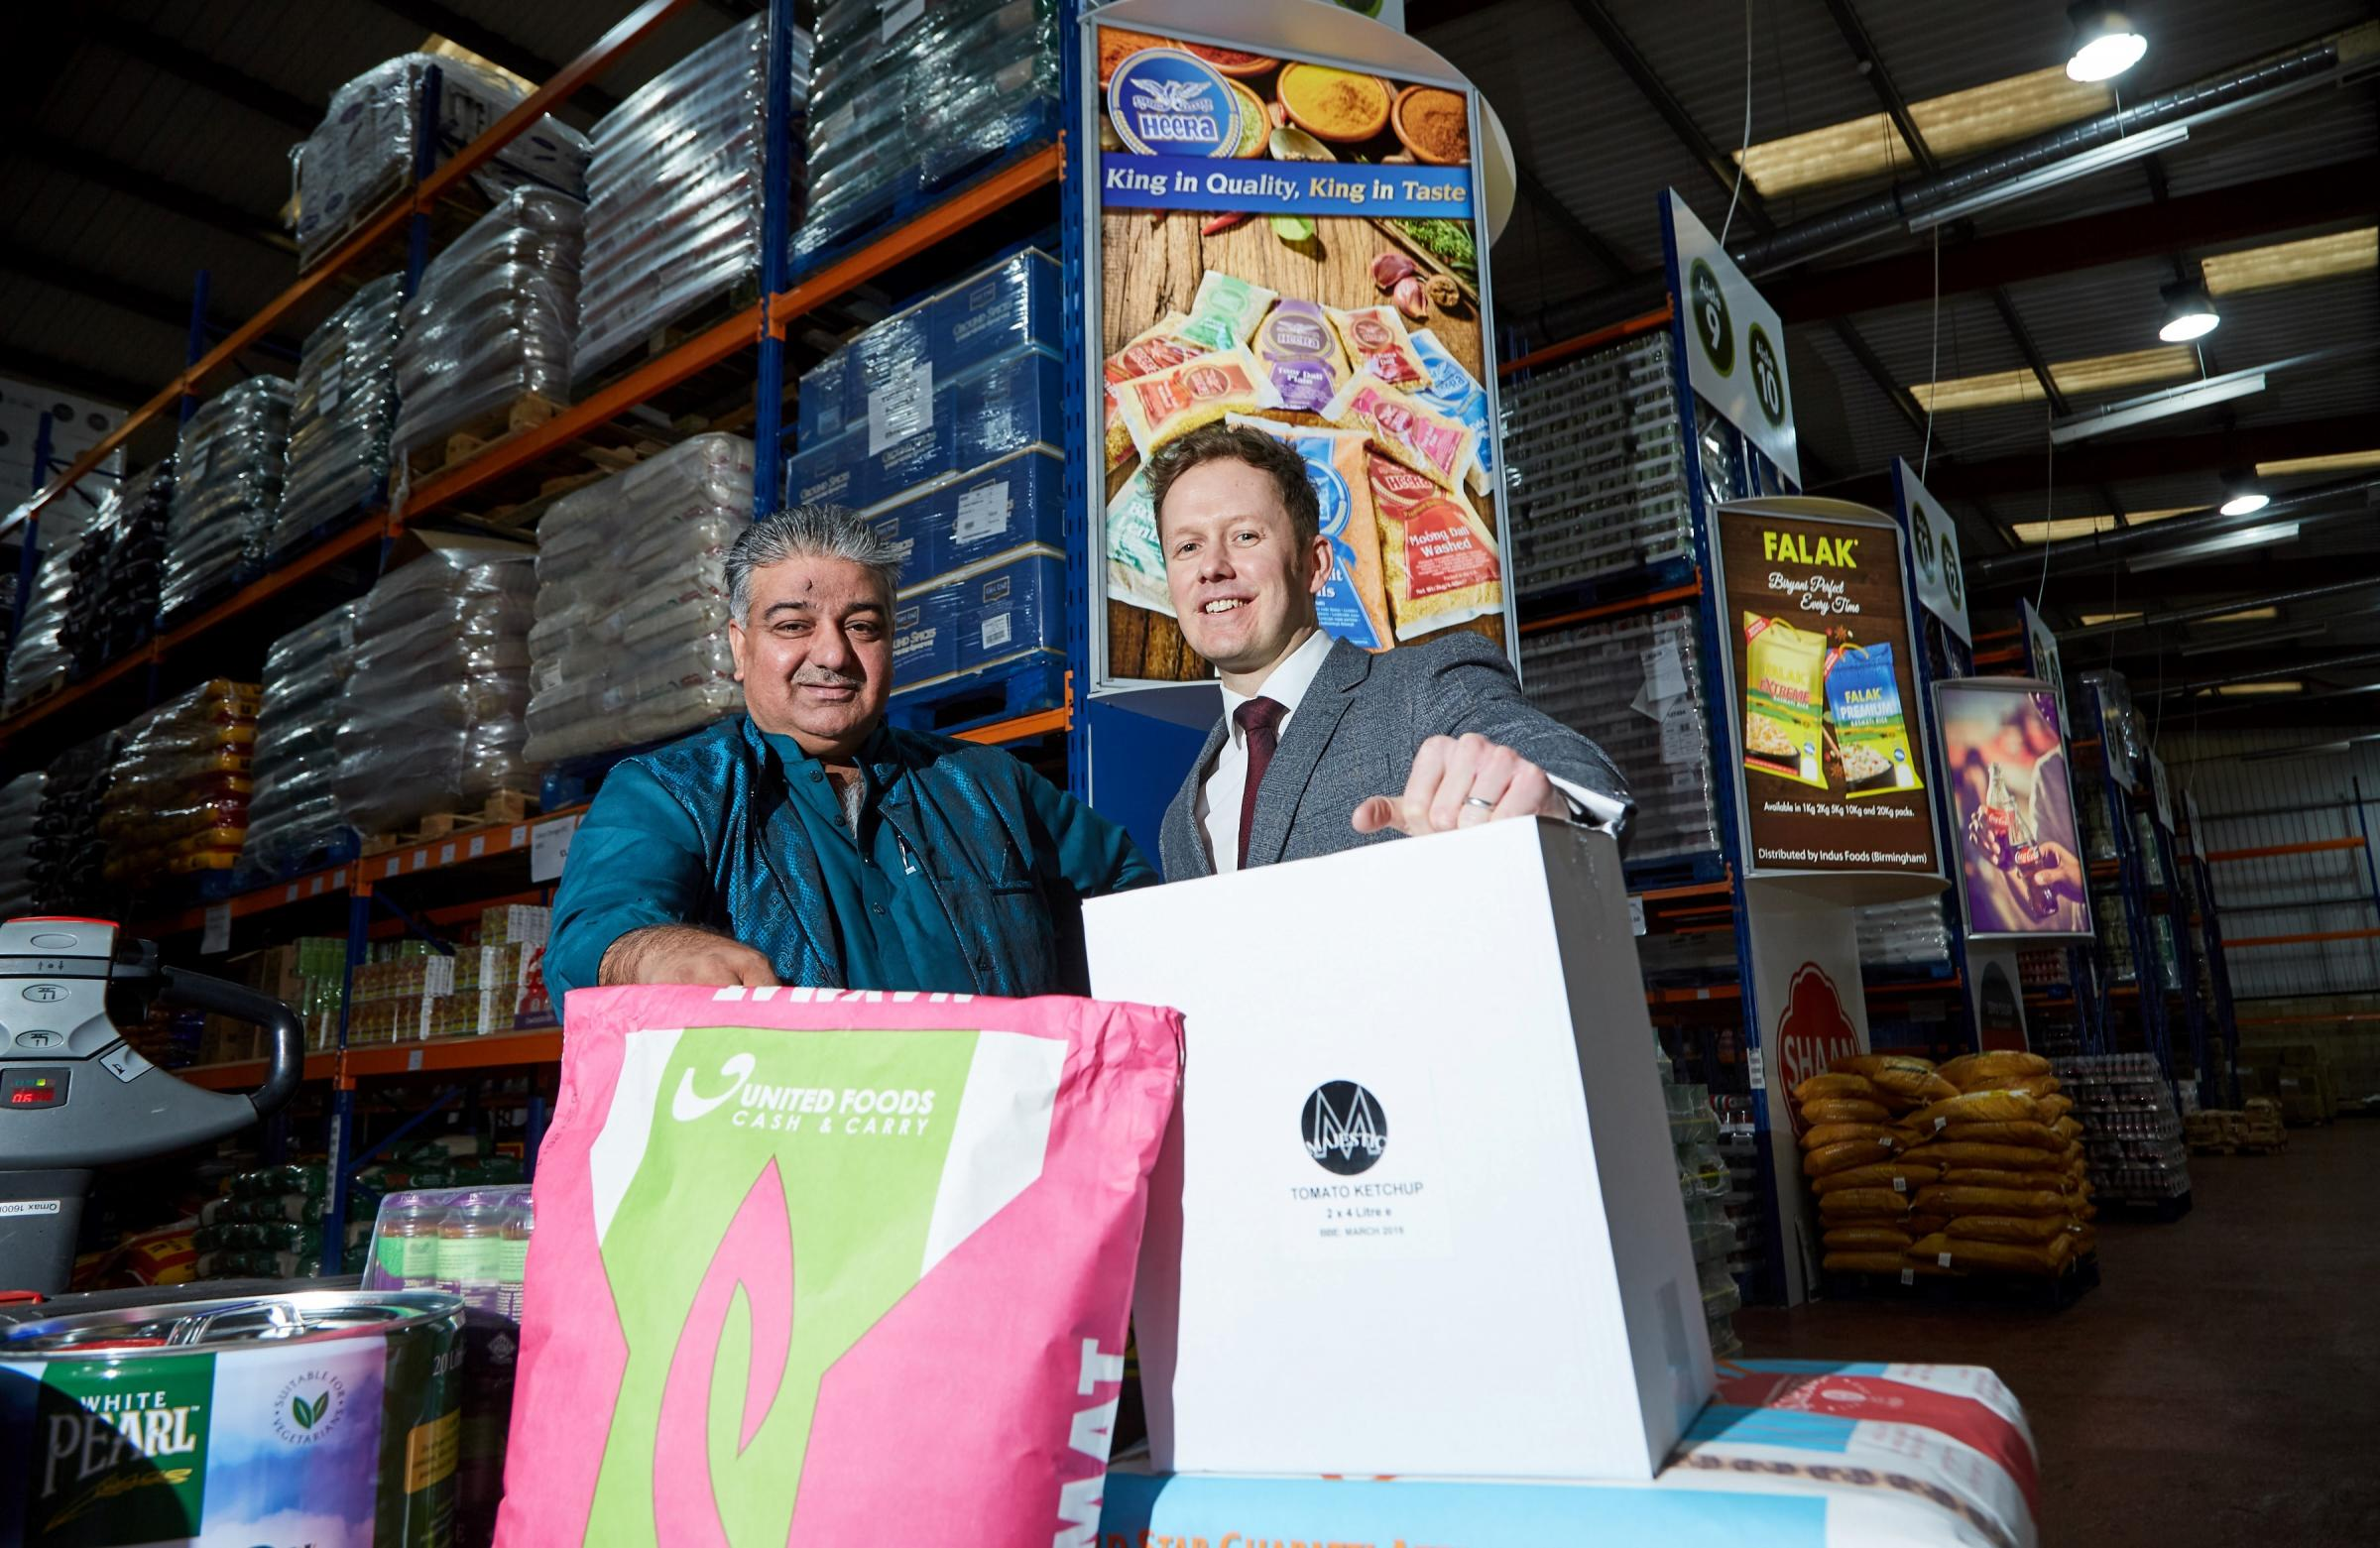 United Foods managing director Saleem Akhtar, left, at the new Cash and Carry store